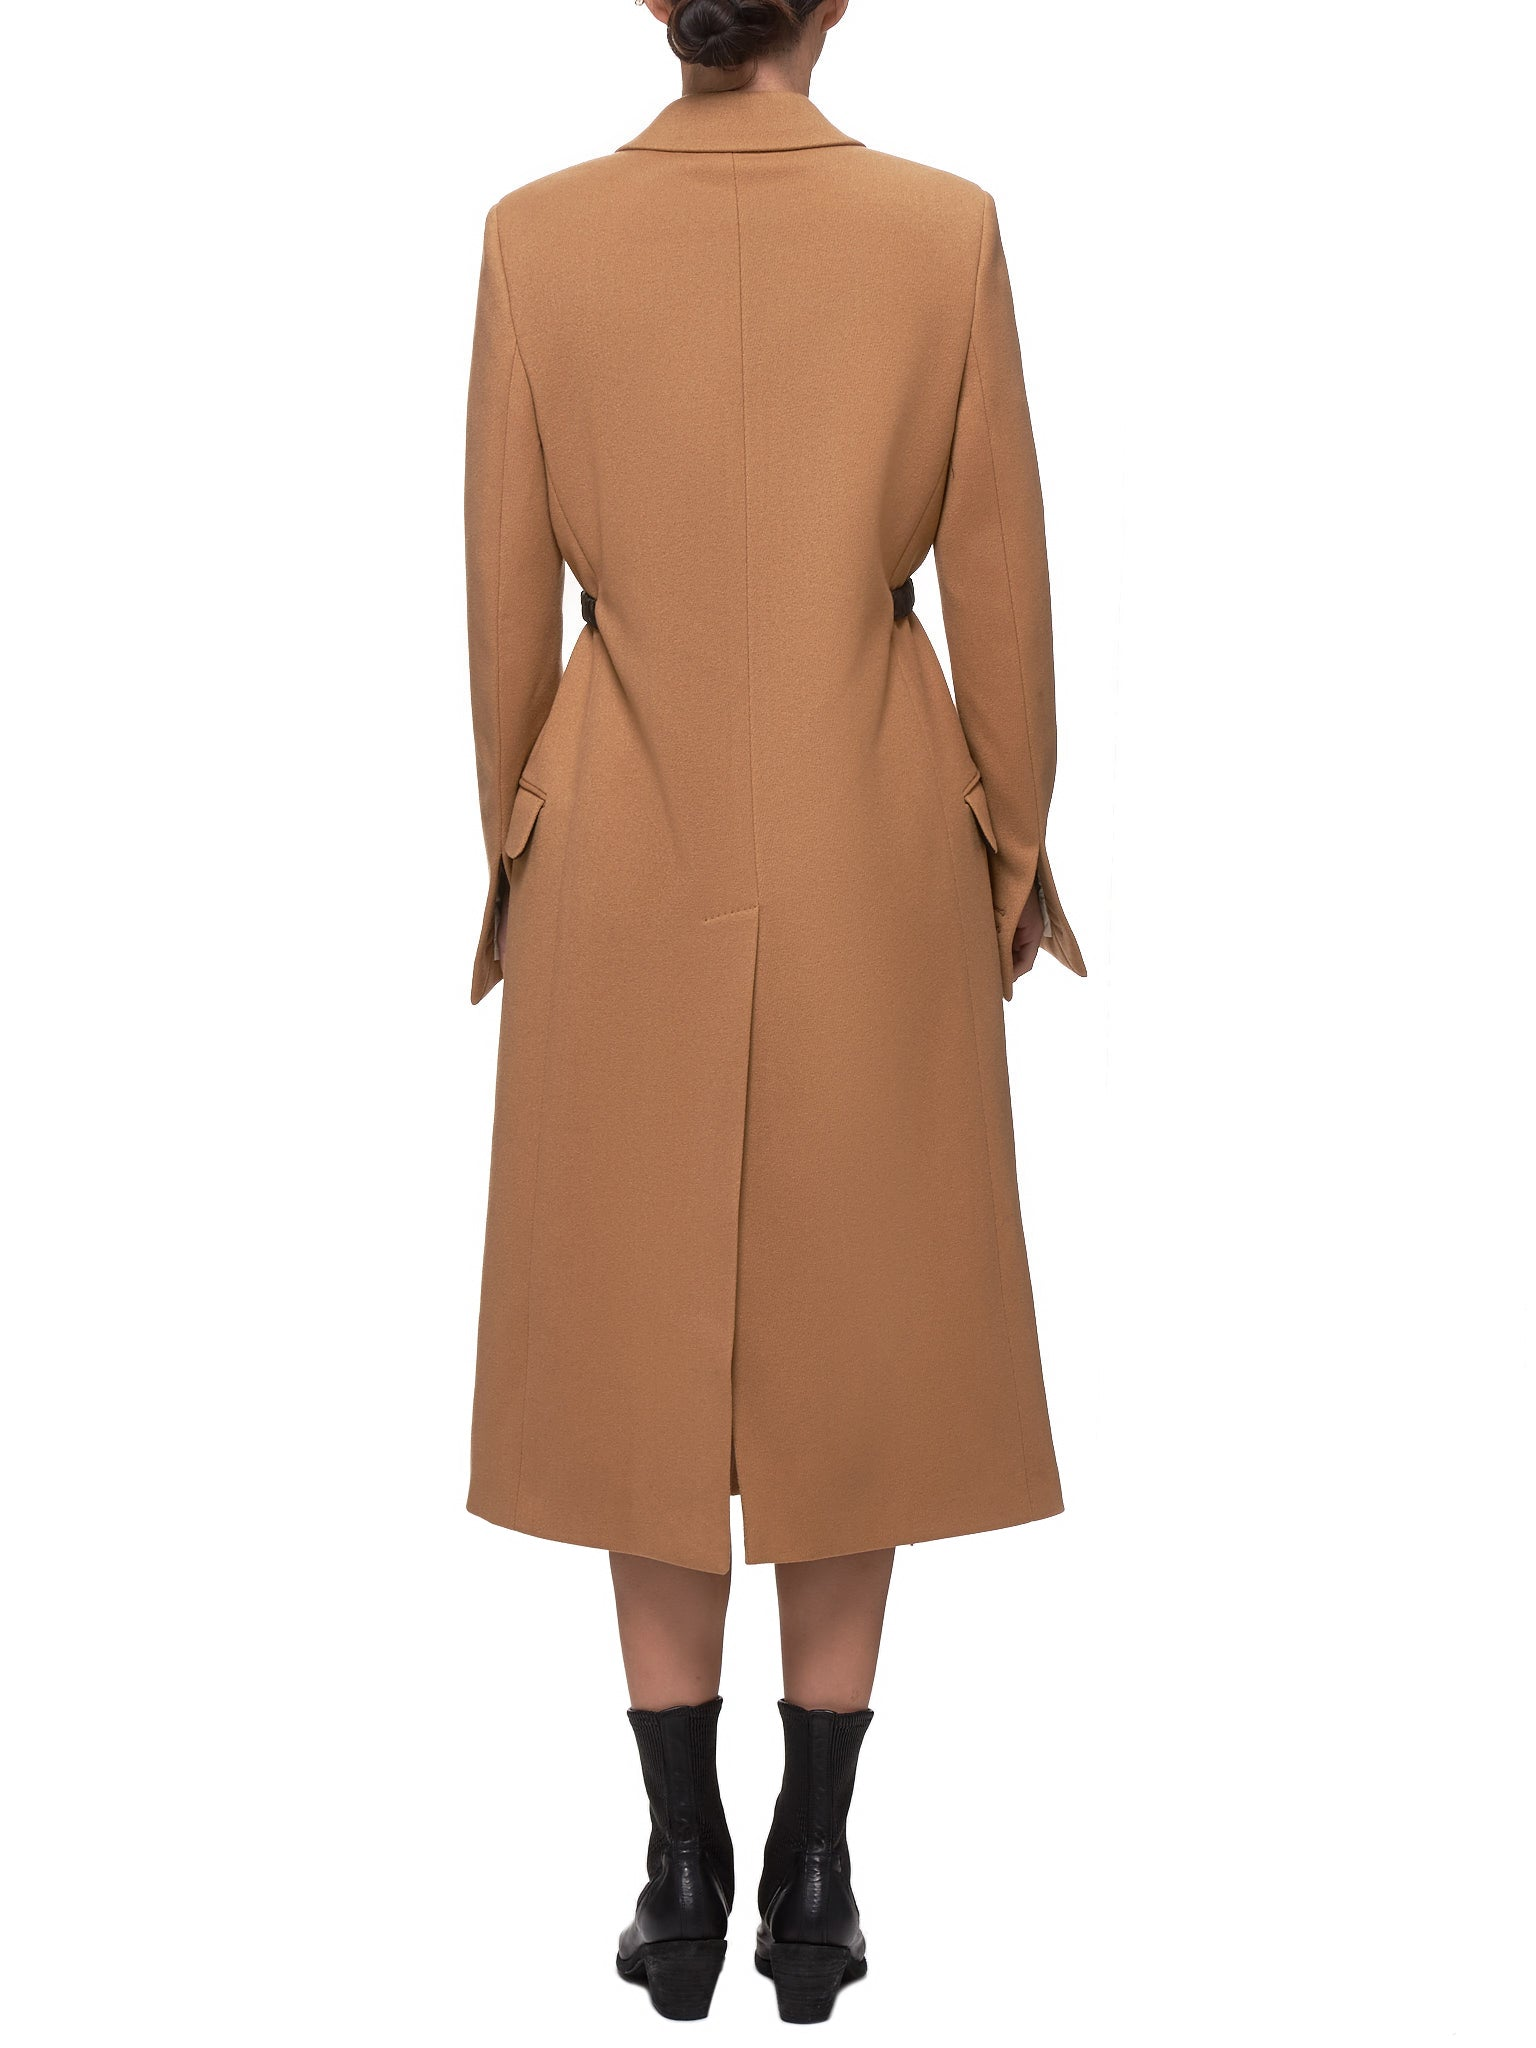 Bottega Veneta Coat - Hlorenzo Back